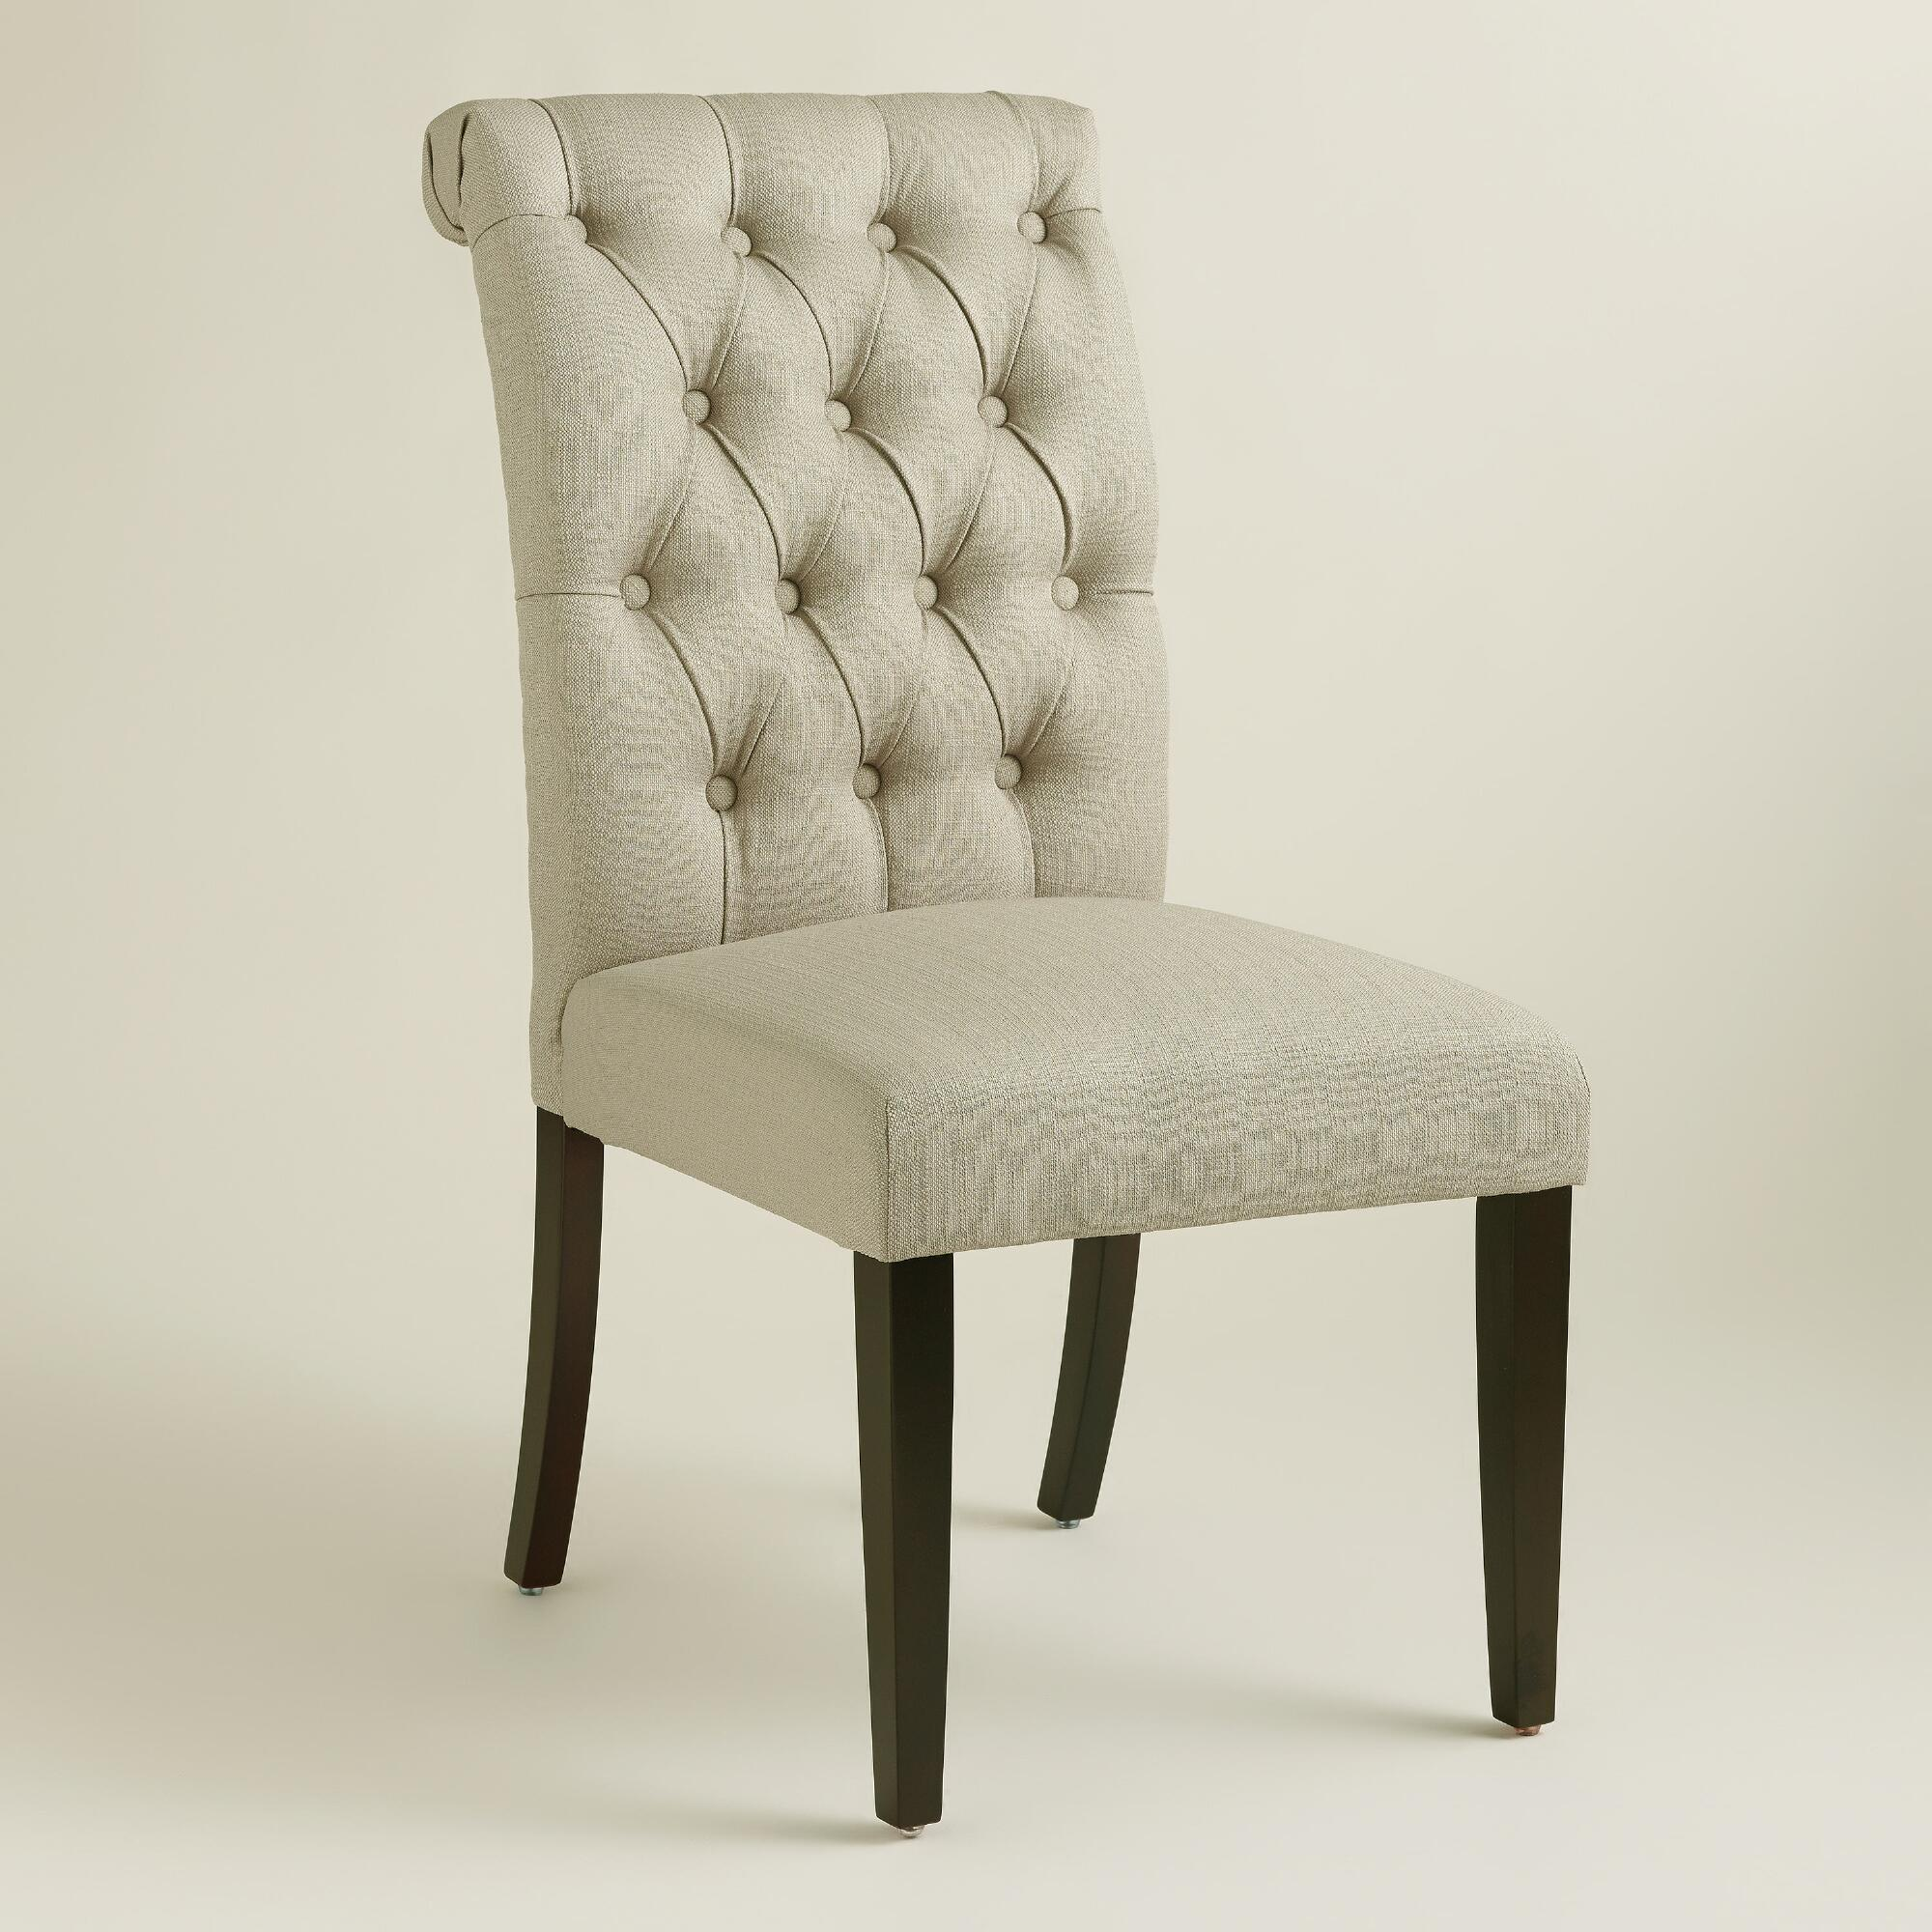 Tufted Side Chair | Tufted Chair | Grey Wingback Chair